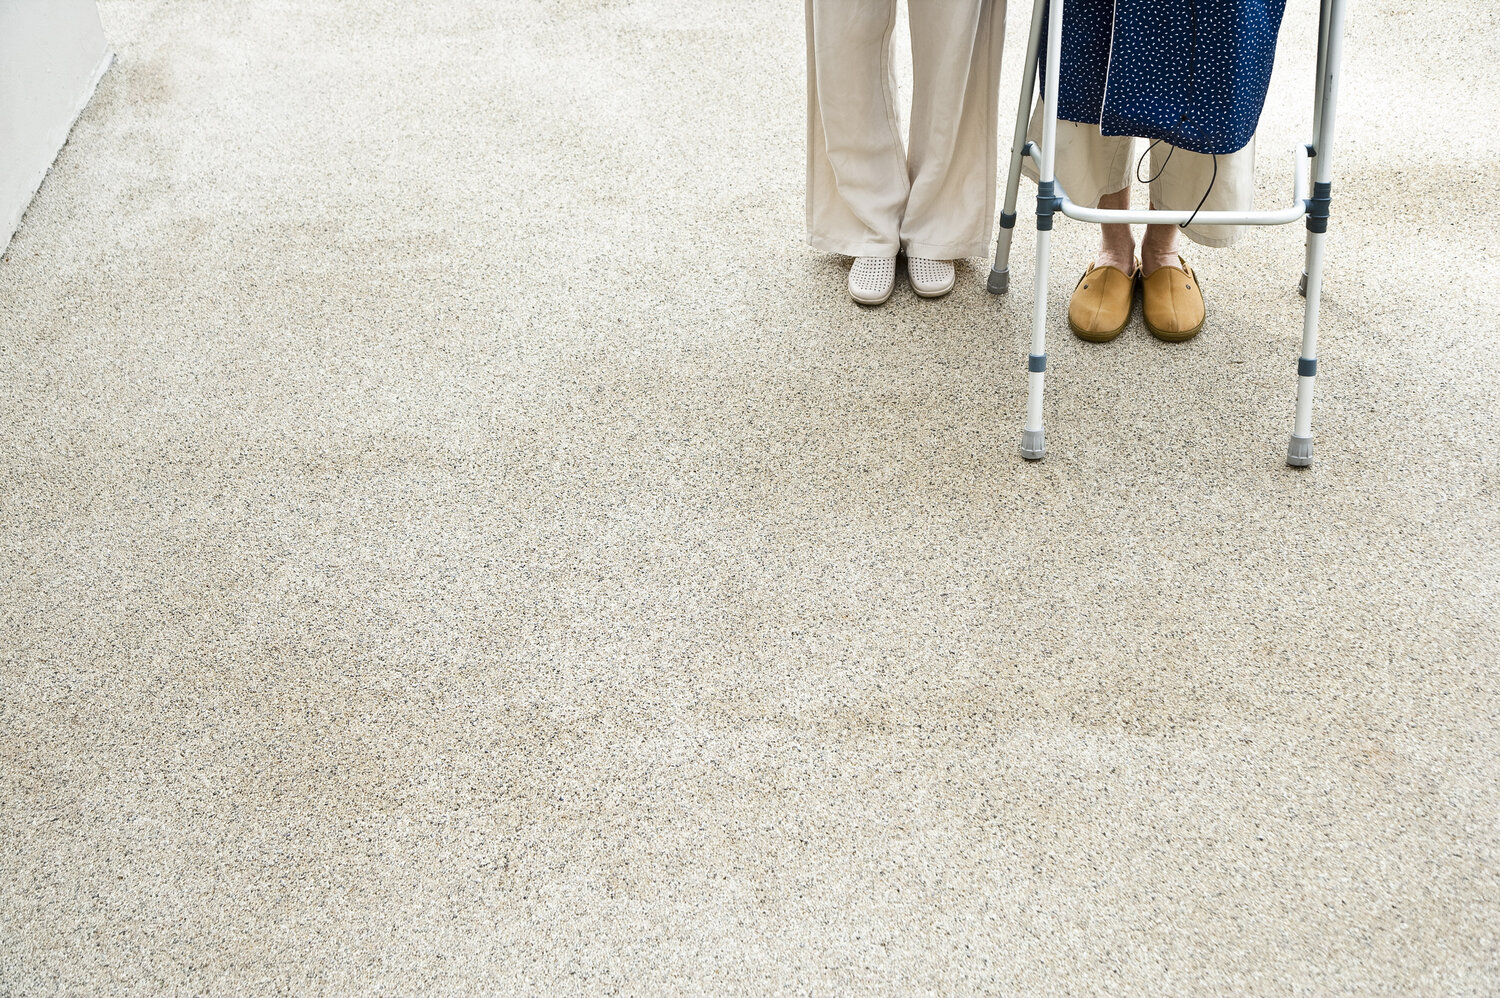 Many falls among the elderly are preventable. Ways to help include reducing certain medications, getting vision checked and using walking aides.